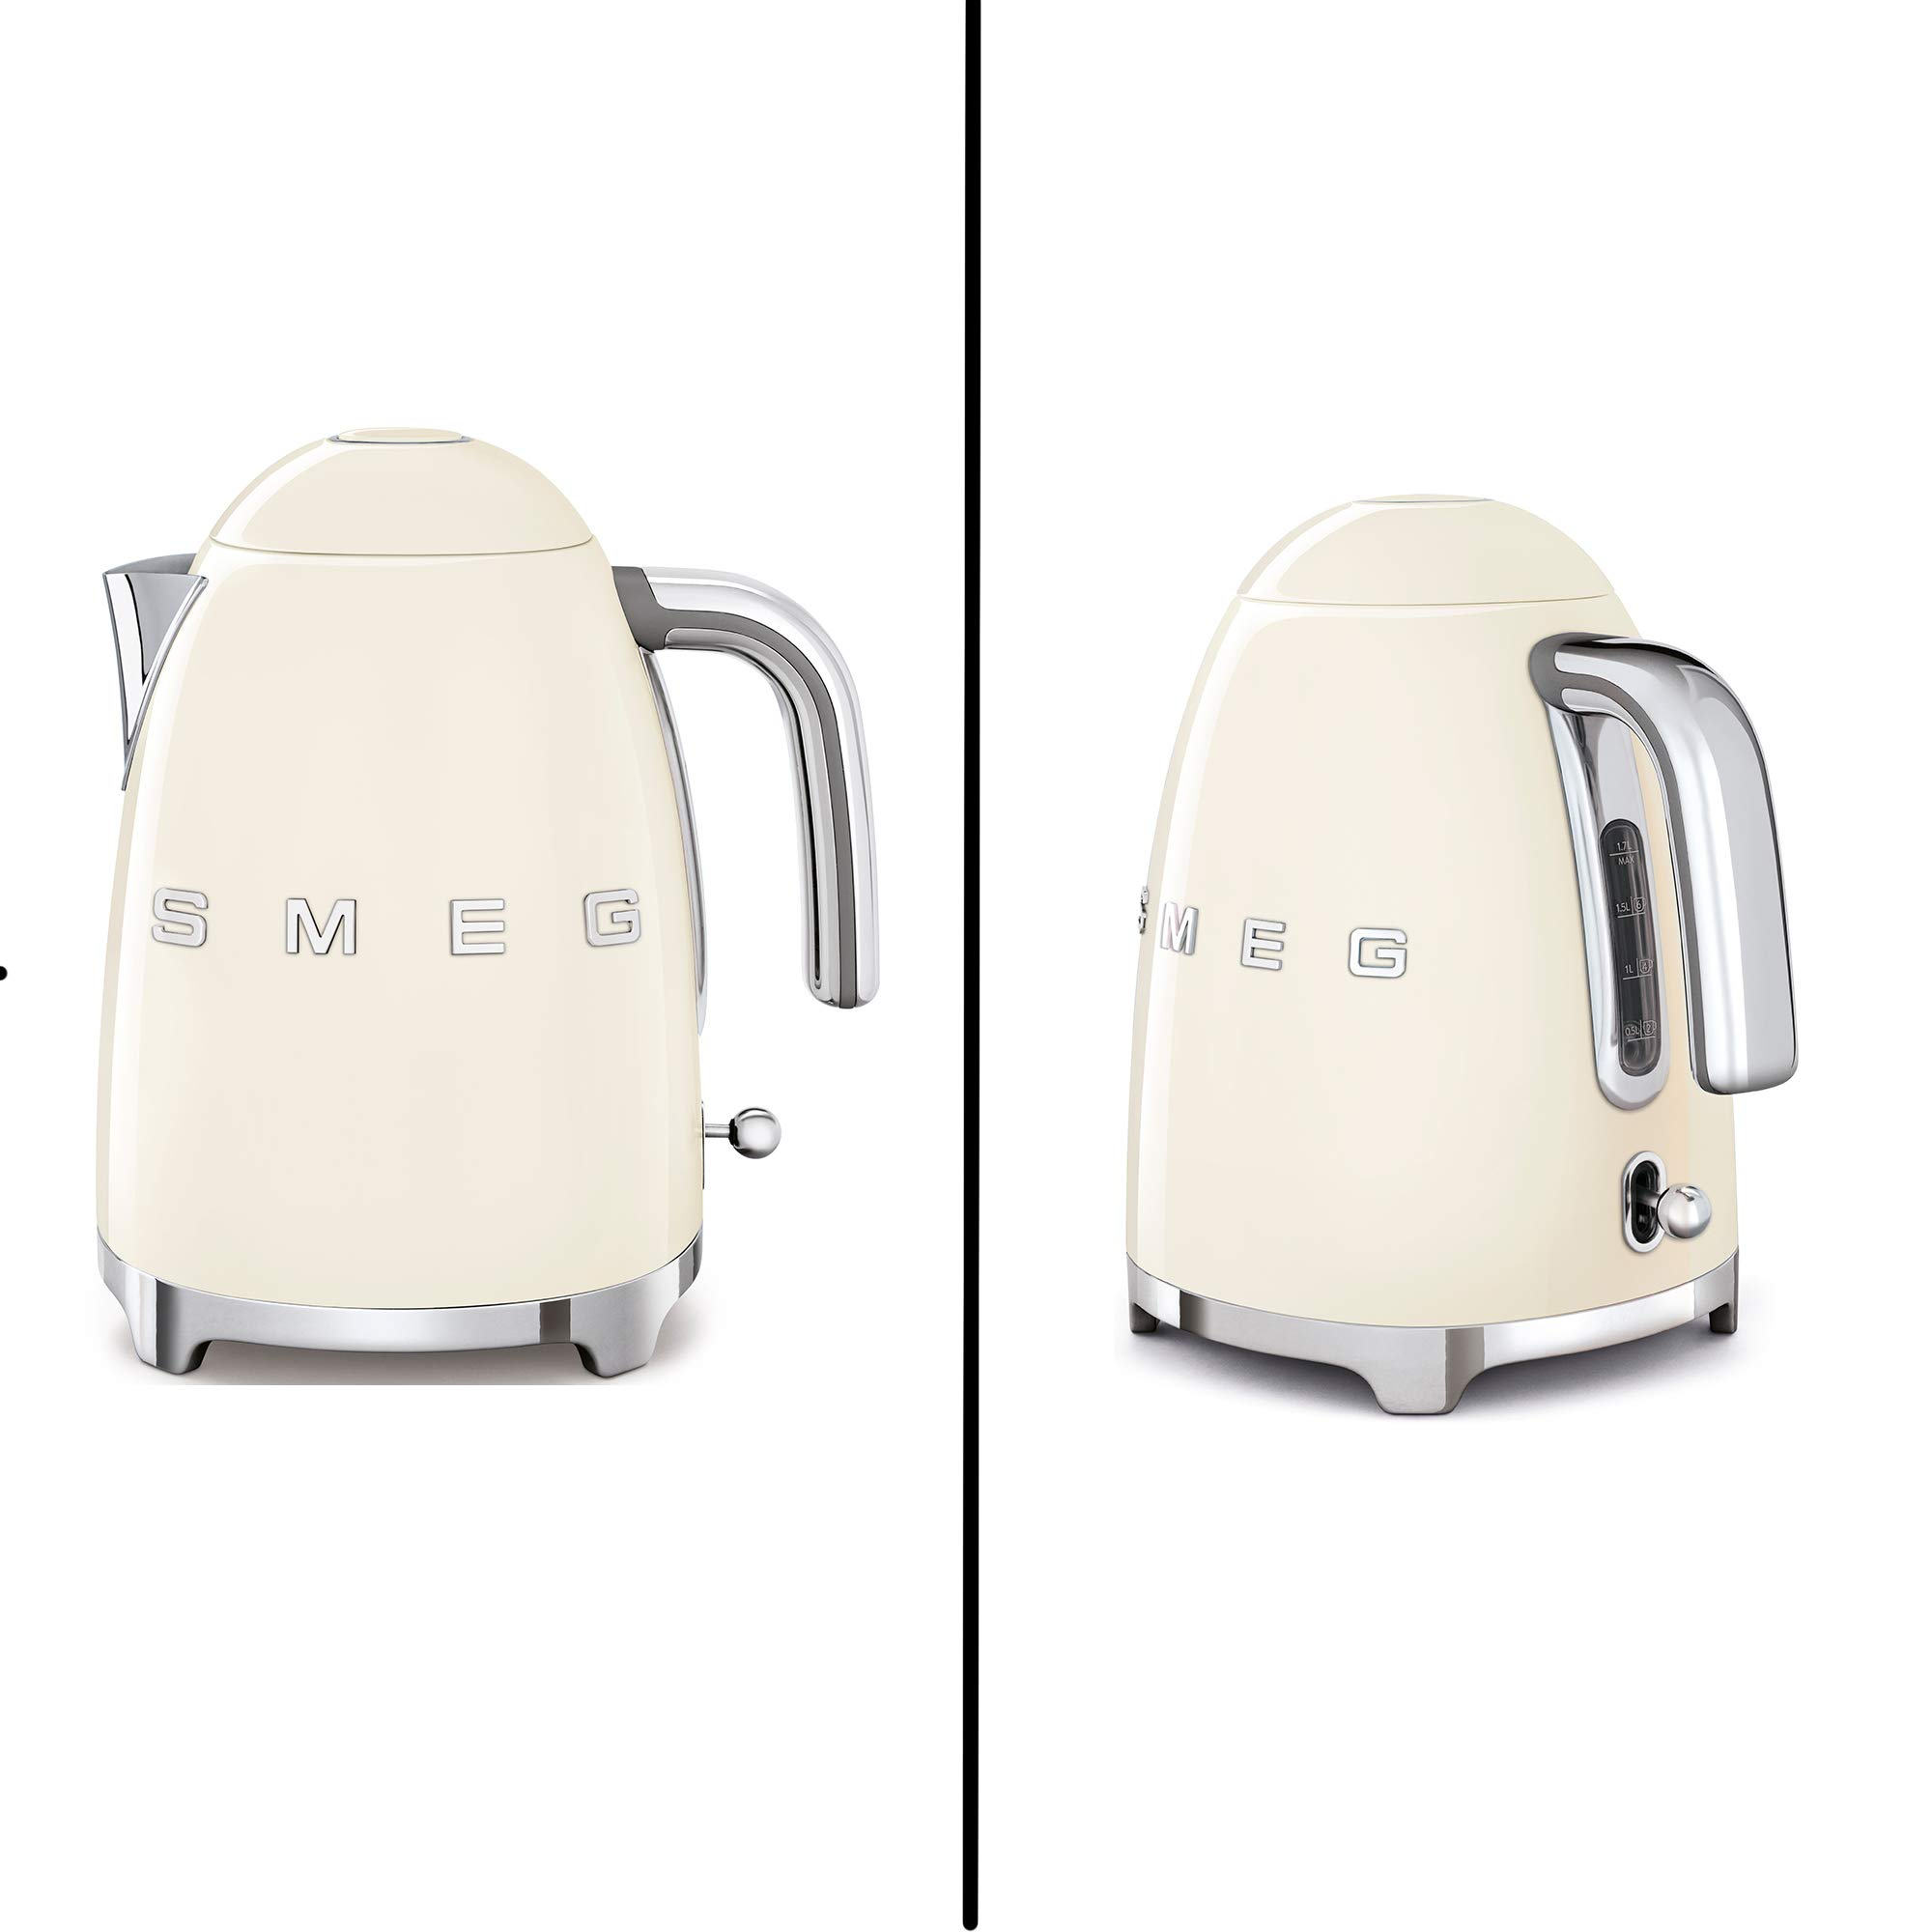 SMEG 2-Slice Toaster & 1.7-Liter Kettle in Cream by WhoIs Camera (Image #4)